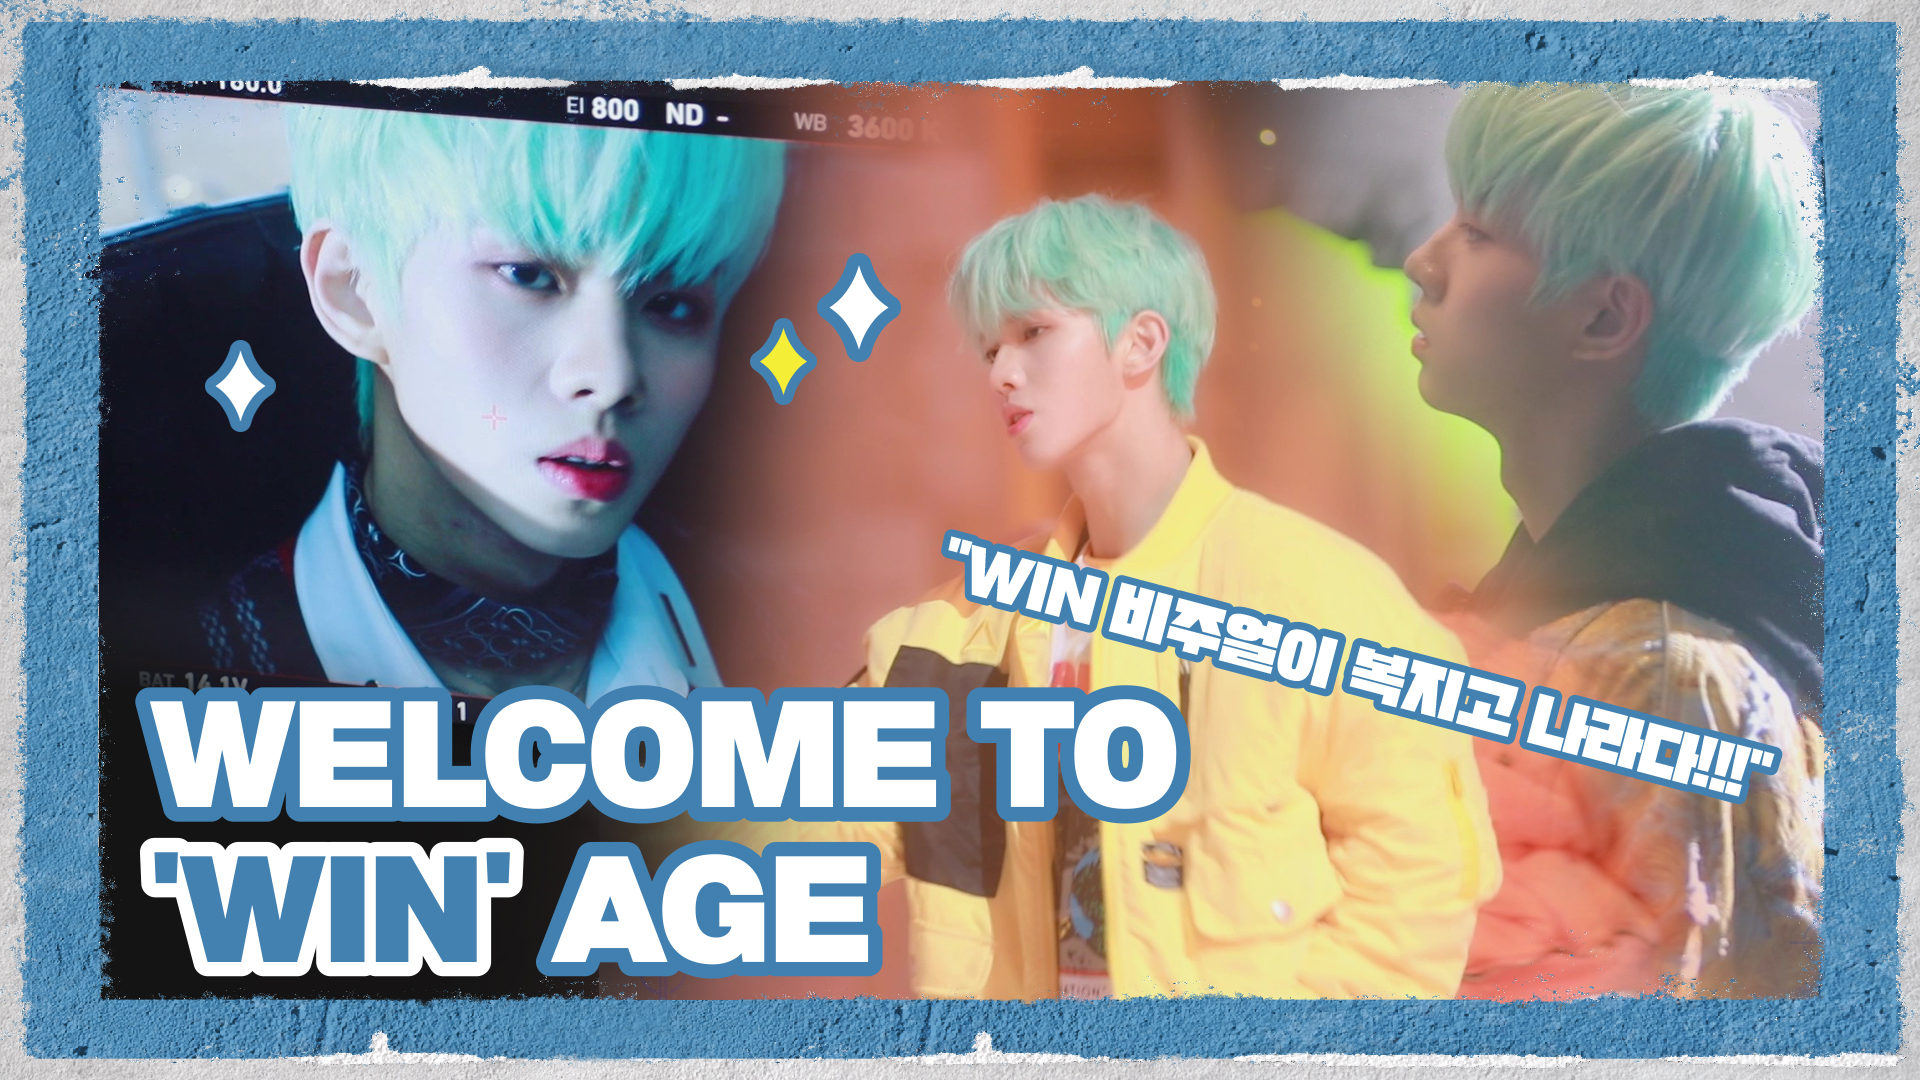 [Let's Play MCND] M-HINDㅣWELCOME TO 'WIN' AGEㅣM/V 비하인드